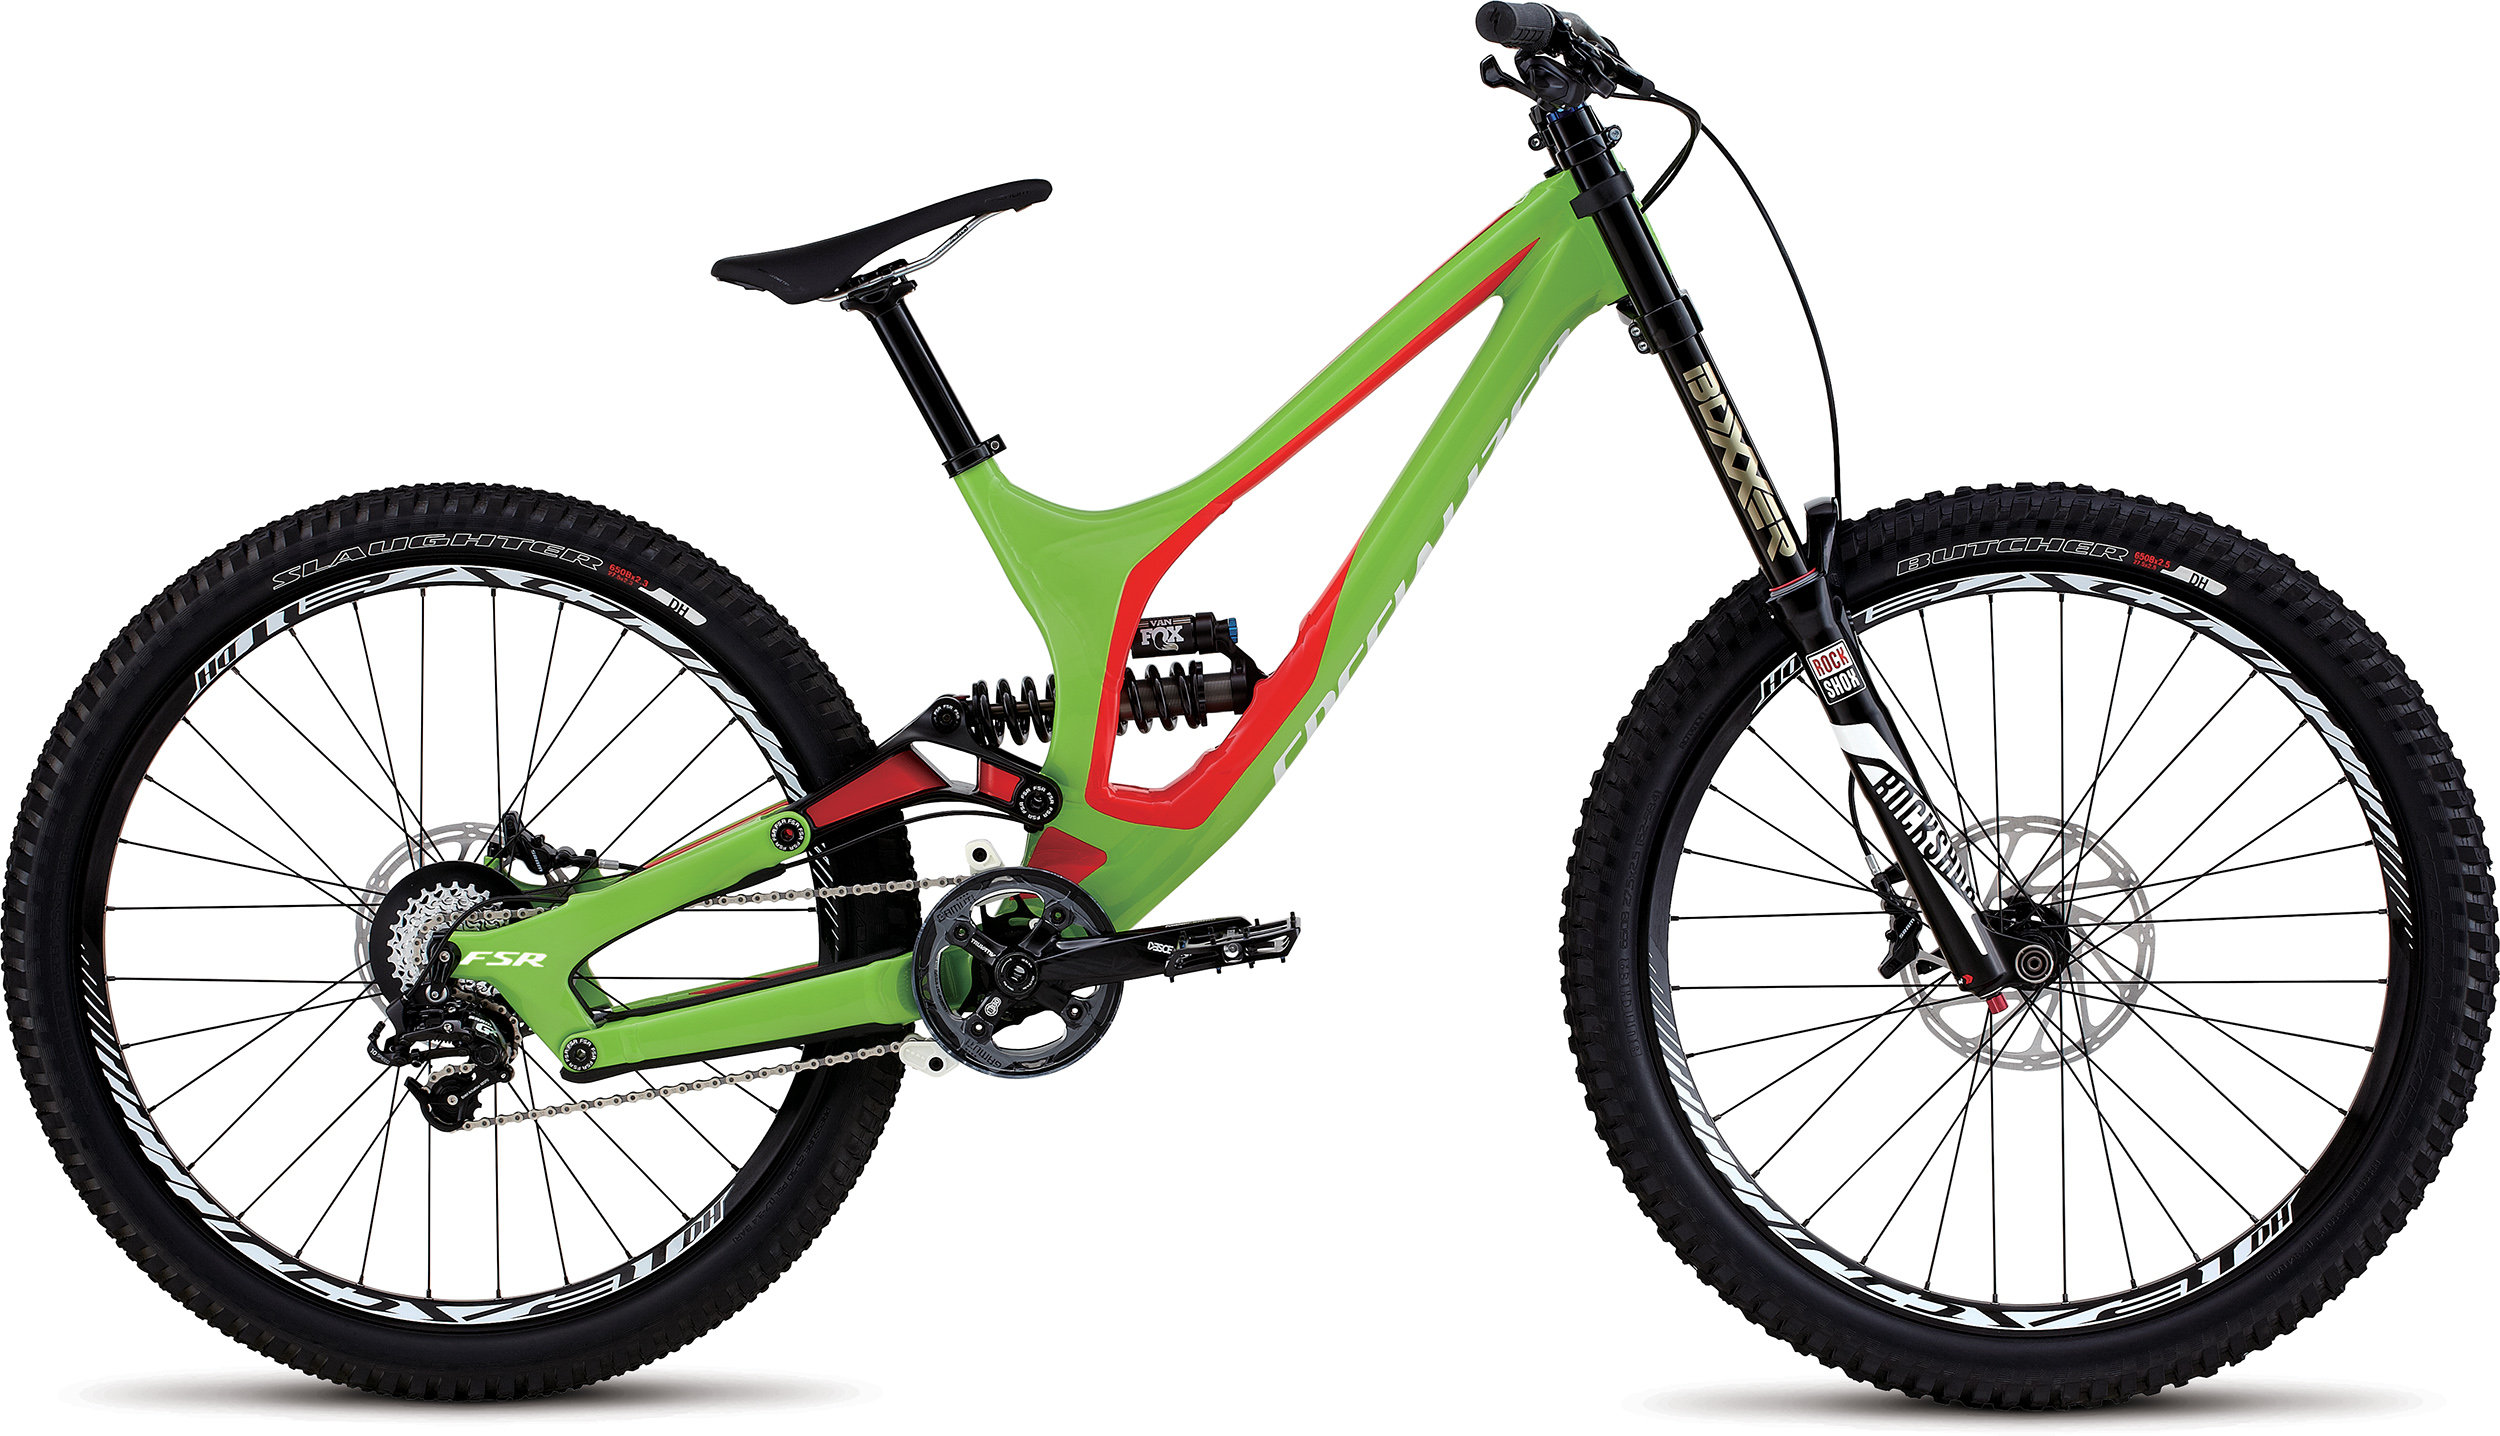 SPECIALIZED DEMO 8 FSR I 650B MONGRN/RKTRED/WHT MD - SPECIALIZED DEMO 8 FSR I 650B MONGRN/RKTRED/WHT MD